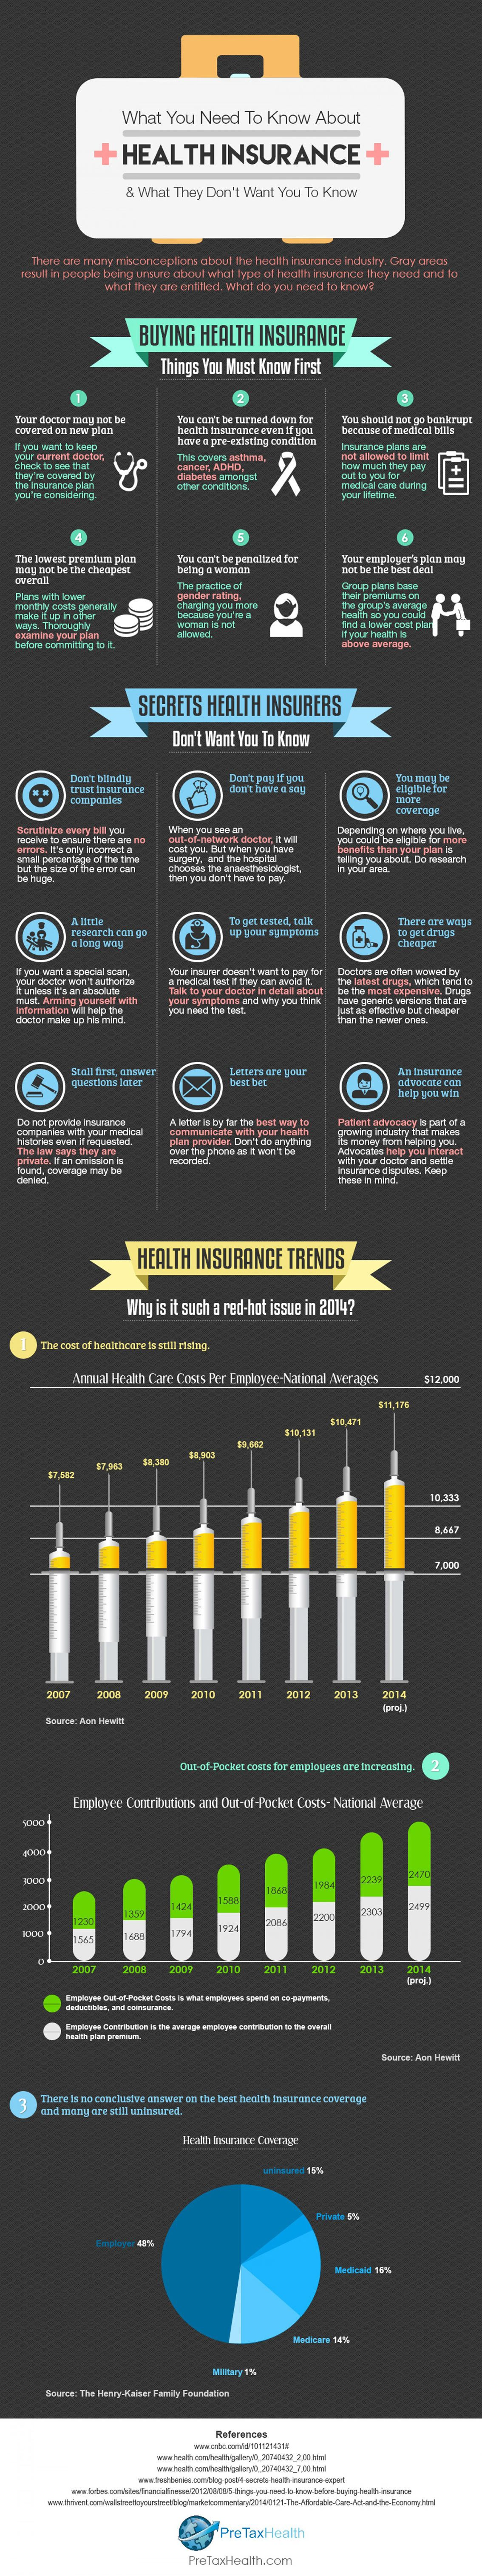 What You Need To Know About Health Insurance Infographic Buy